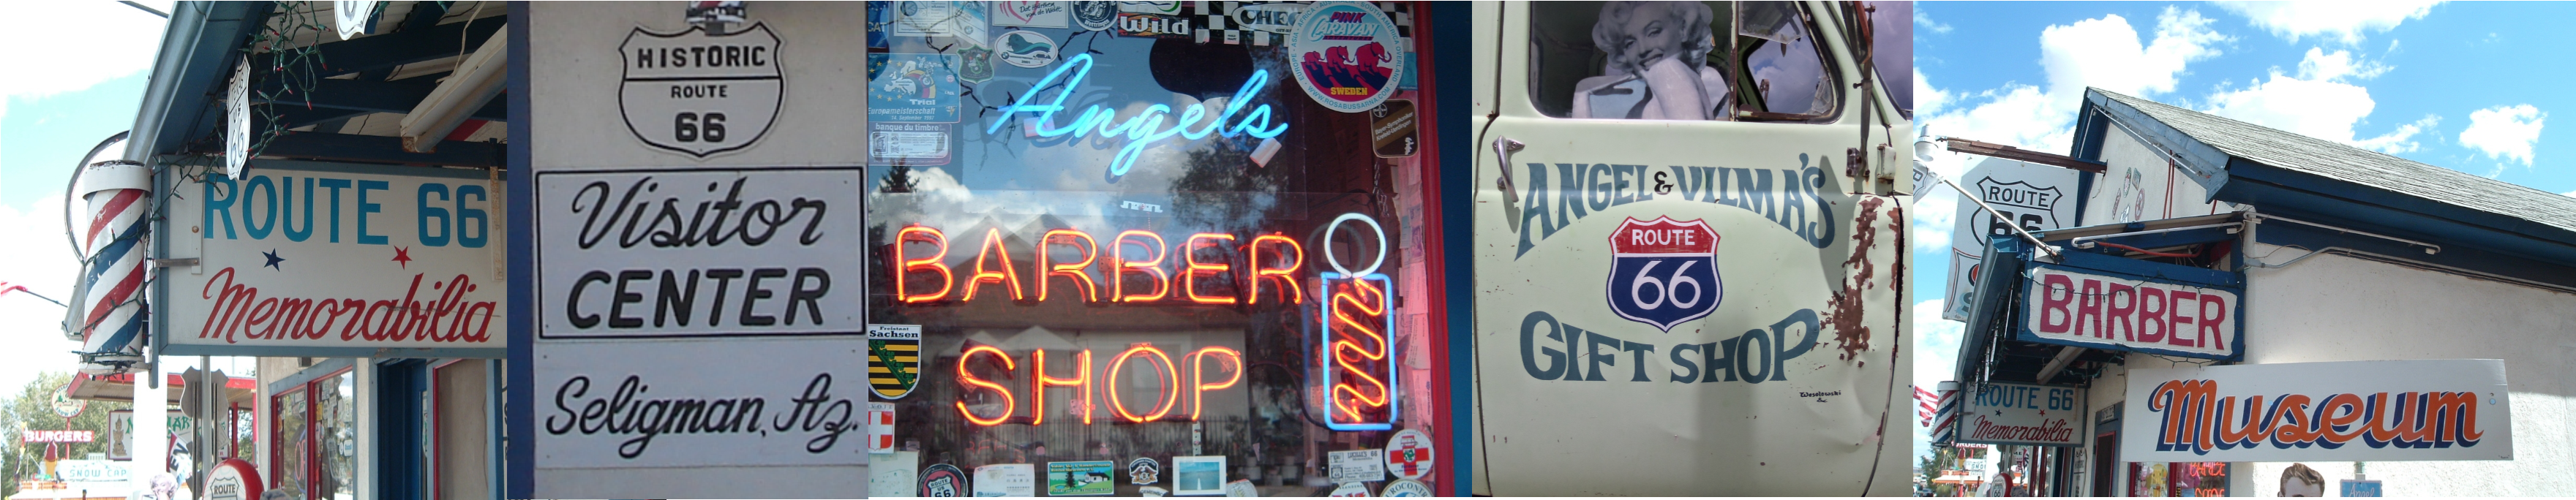 The Delgadillo Original Route 66 Gift Shop is many things here in Seligman Arizona including a Route 66 Memorabilia Shop, a Route 66 Visitor's Center, a barber shop, and museum